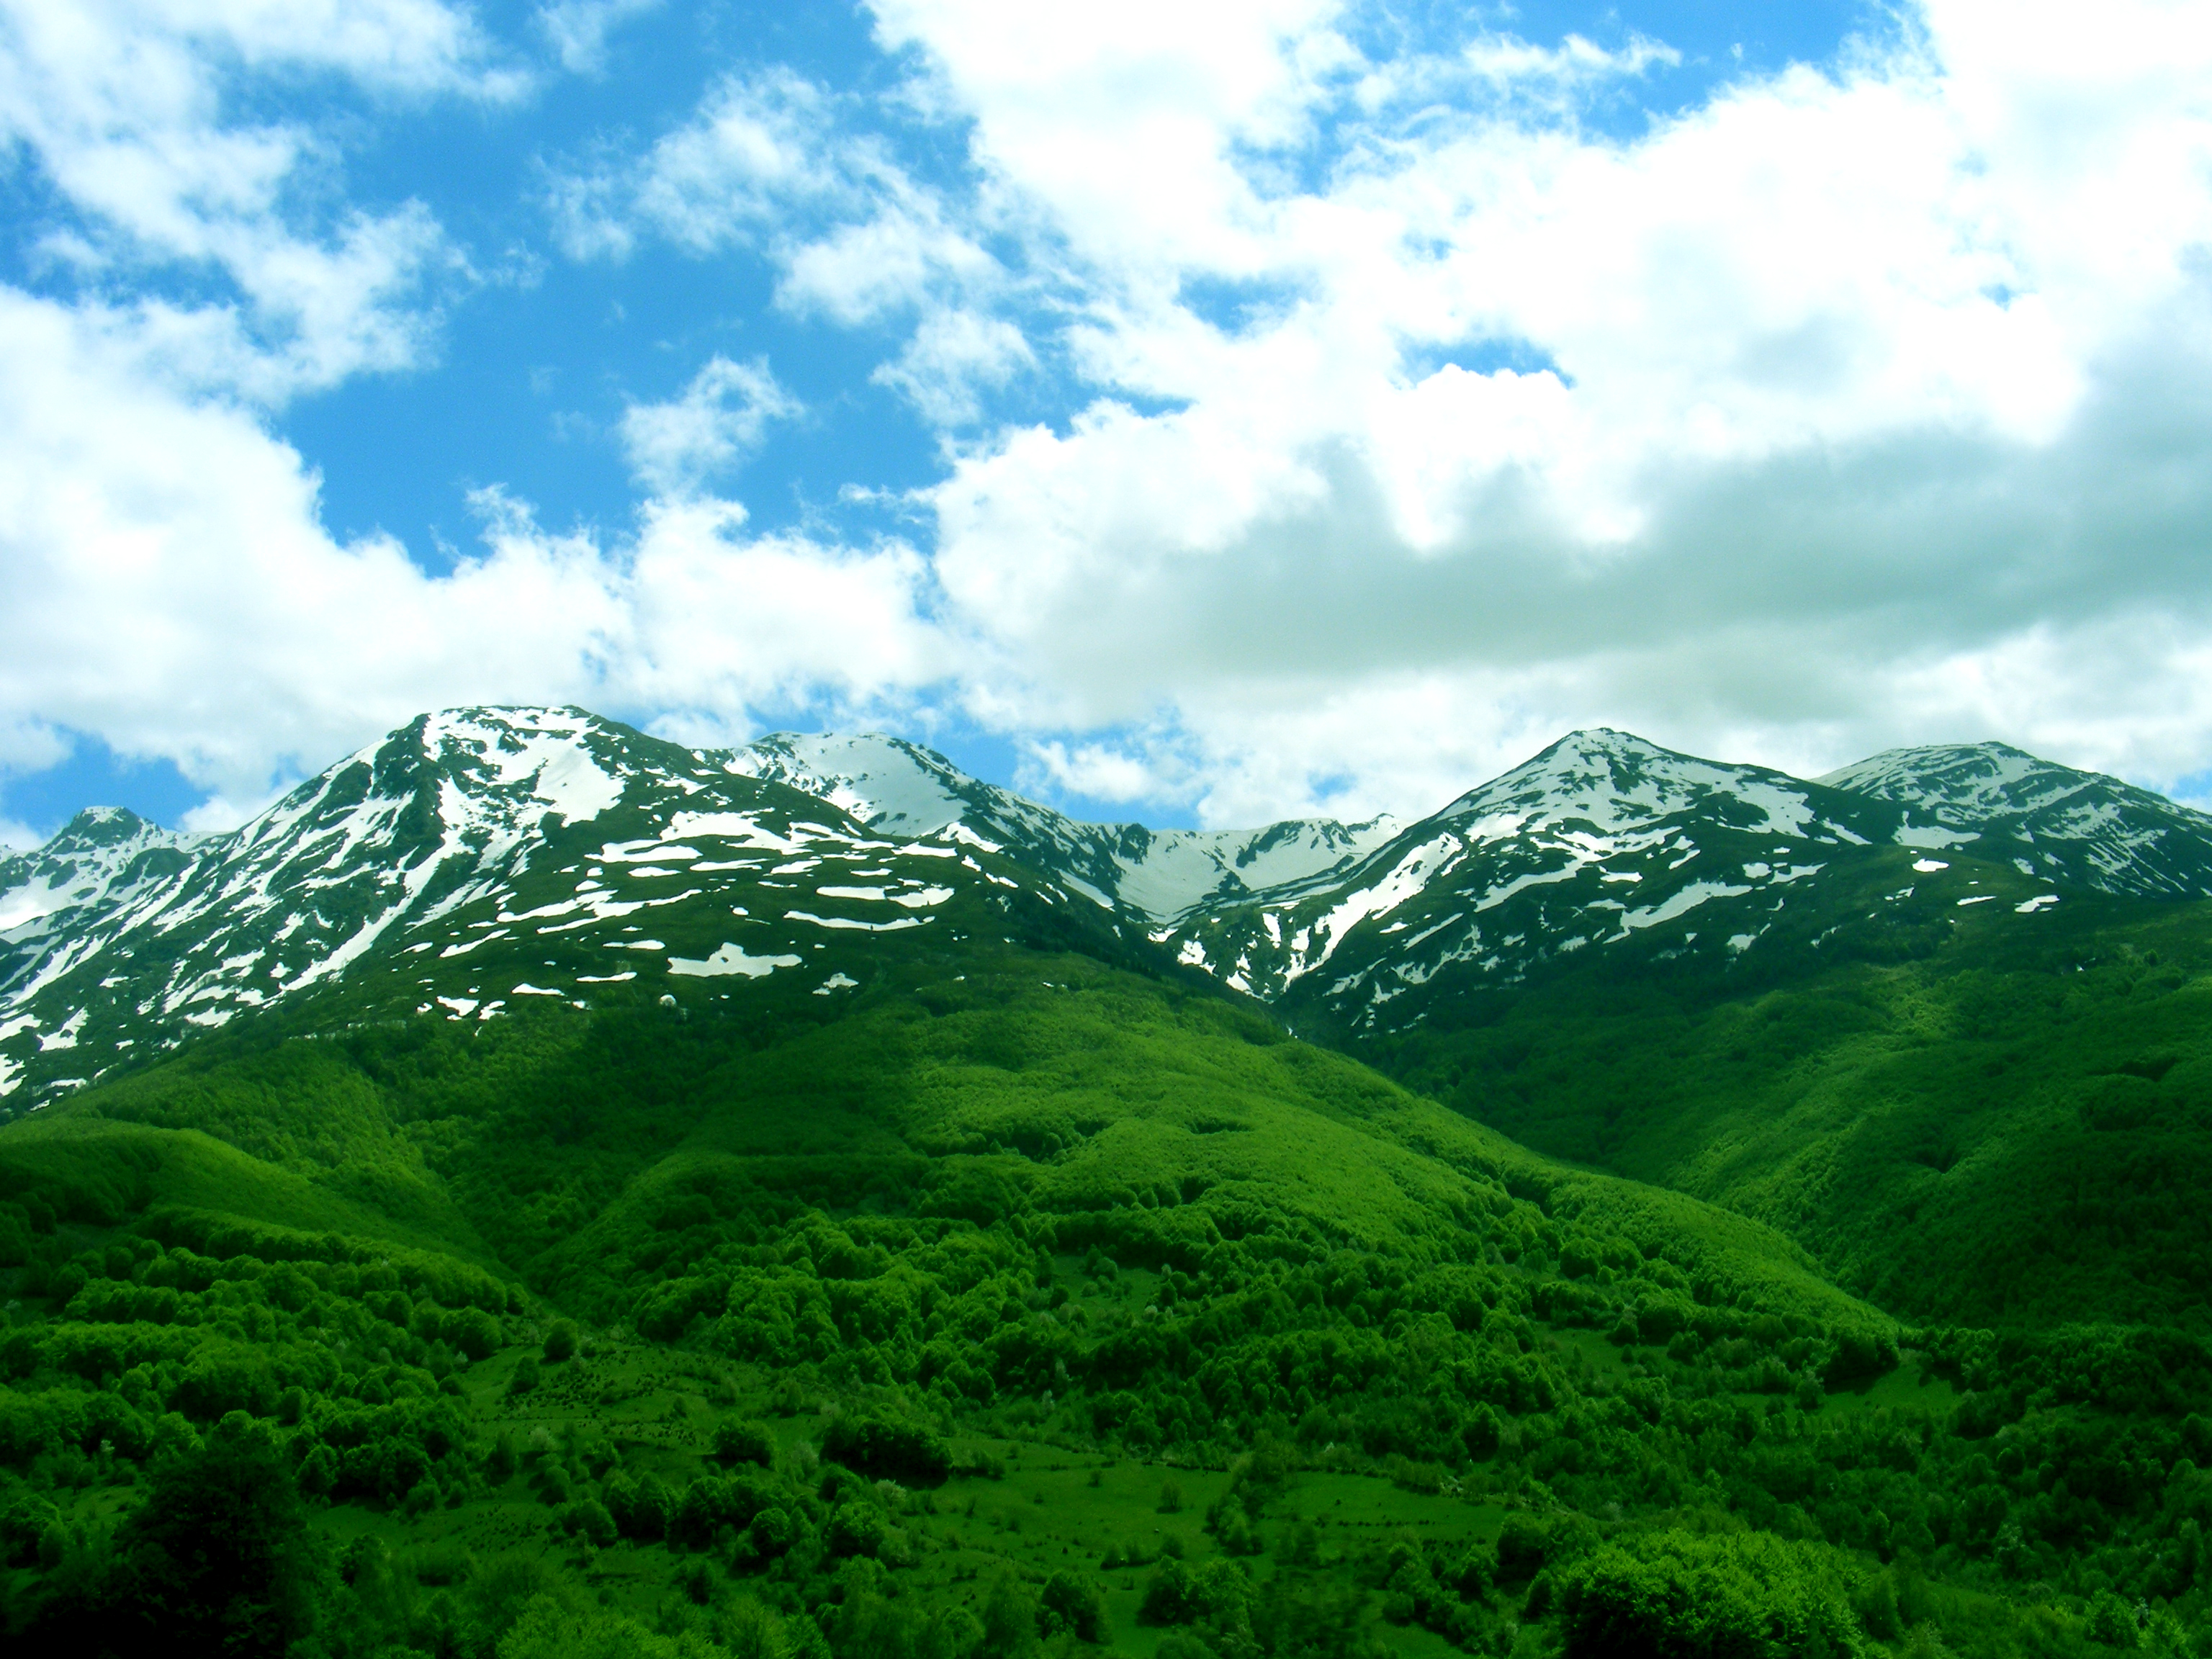 Sharri Mountains Kosovo - Malet e Sharrit Kosove